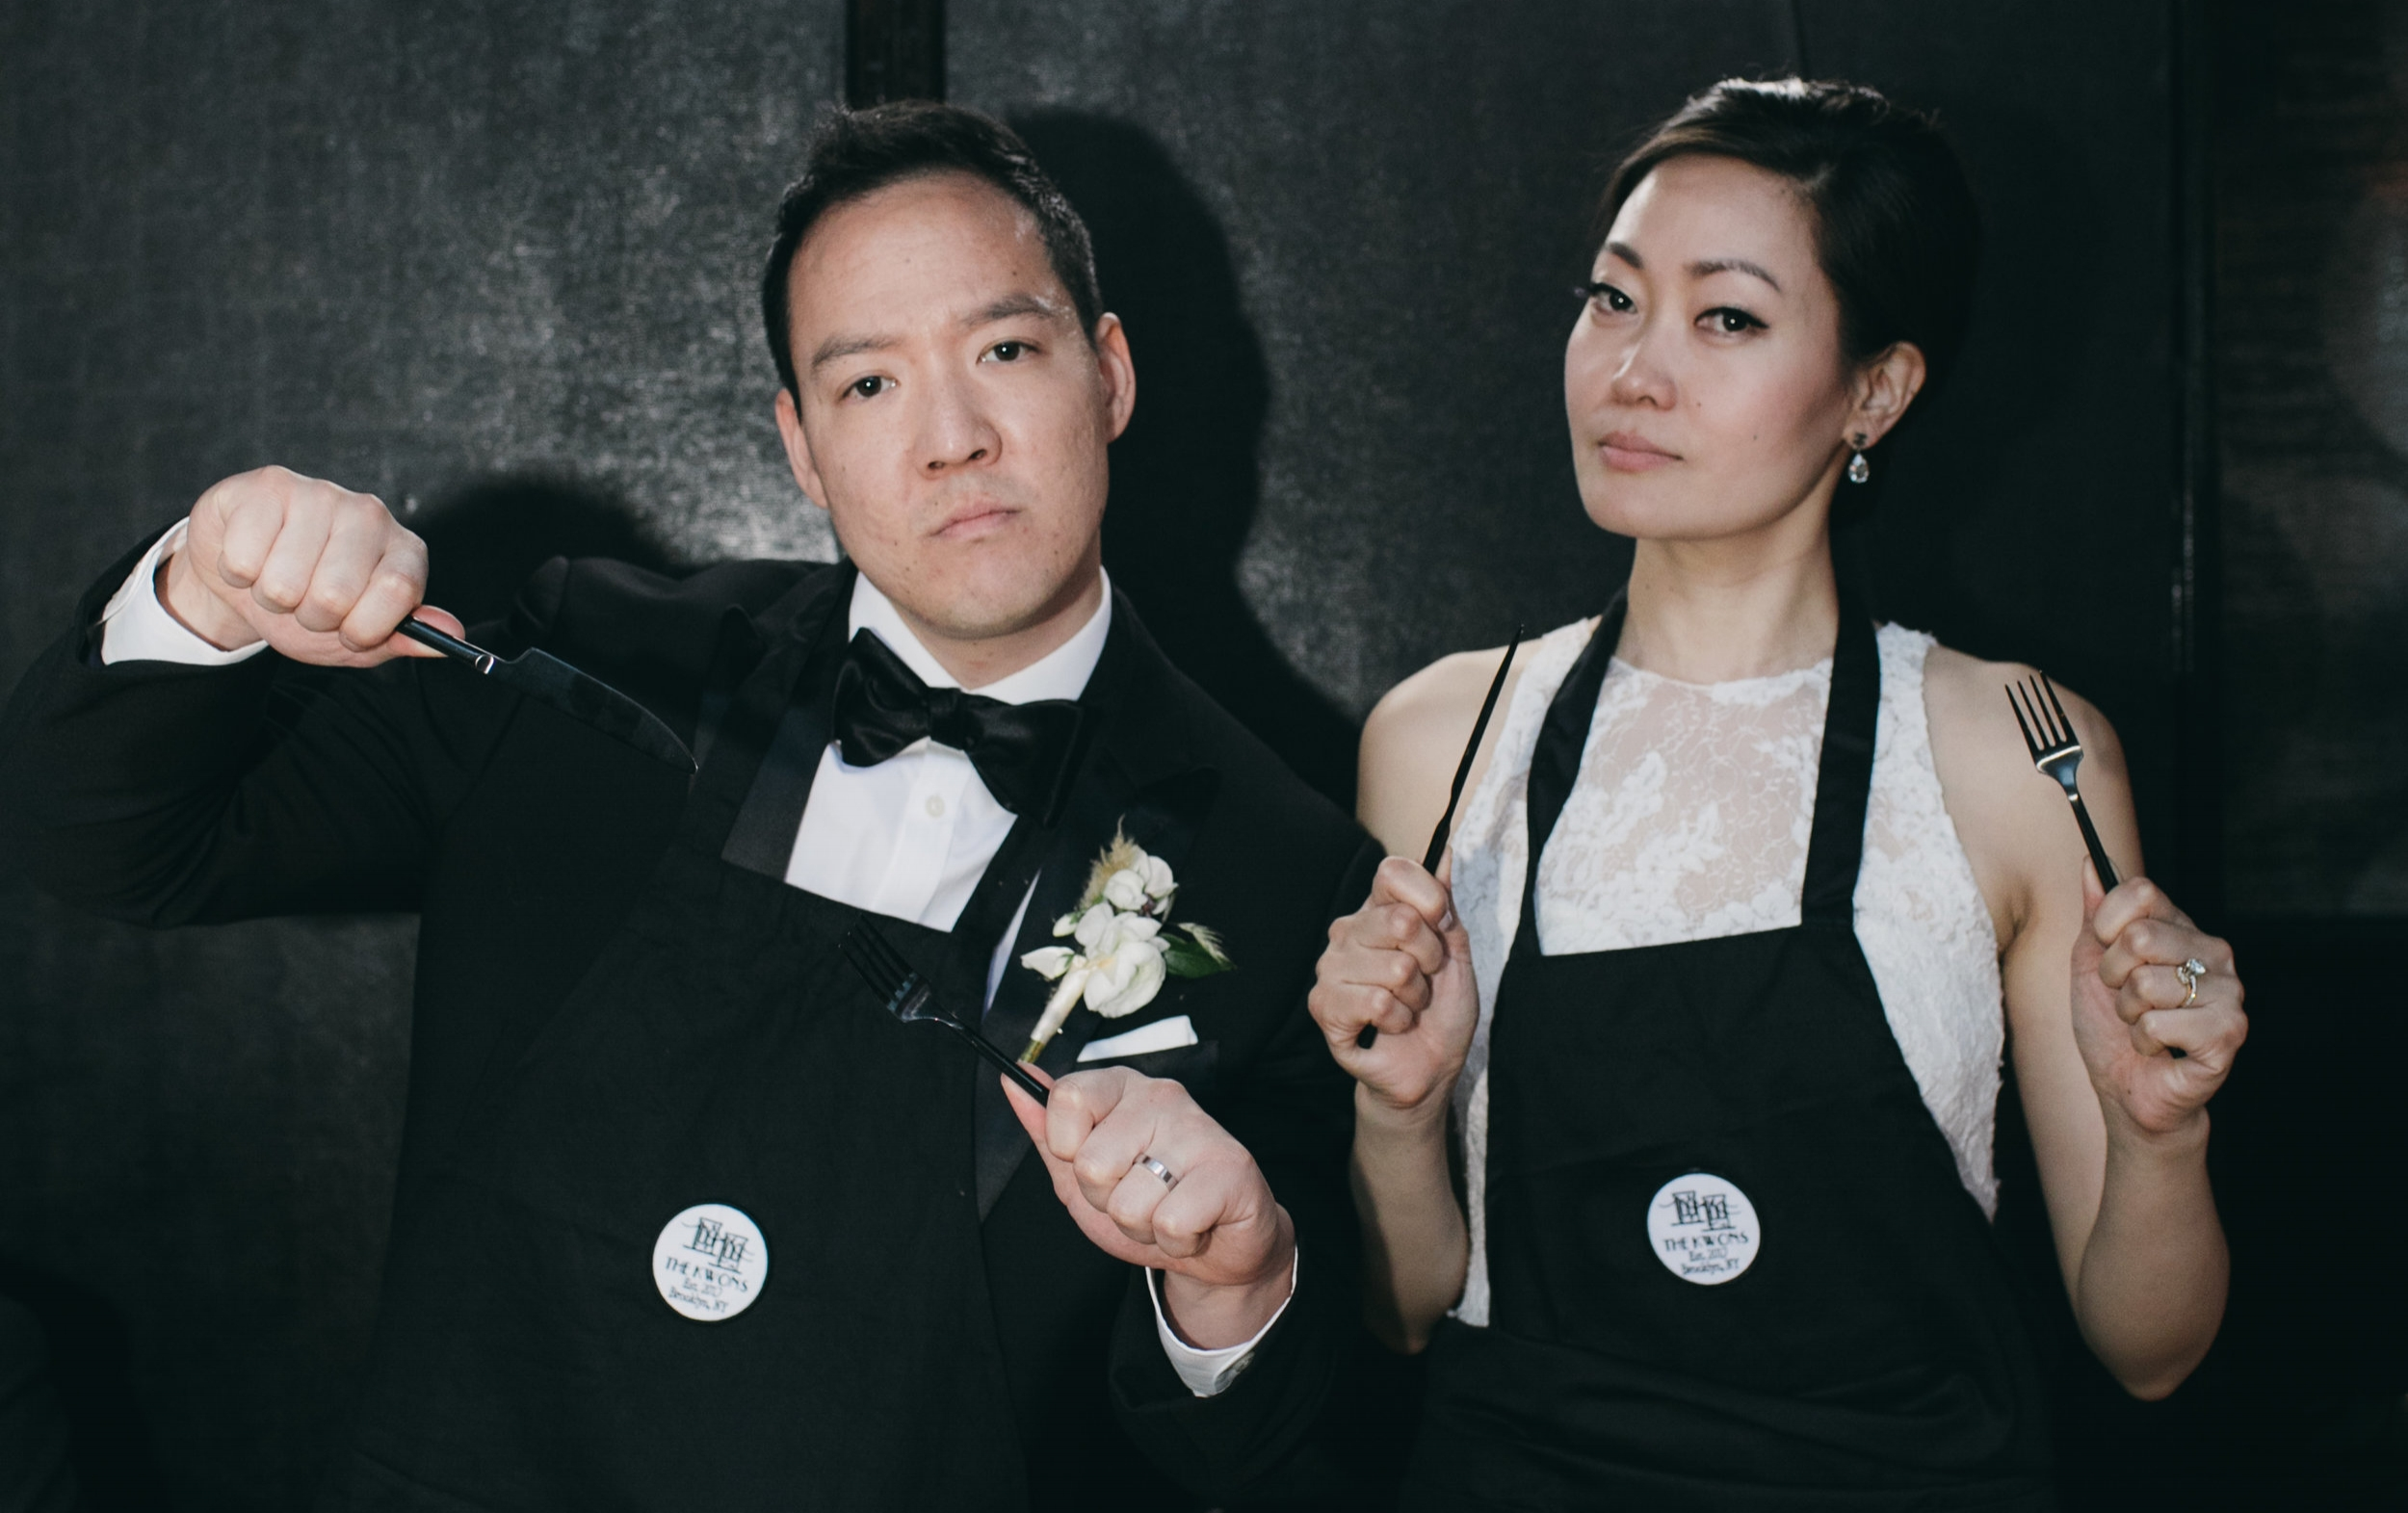 501 Union black tie wedding.jpg